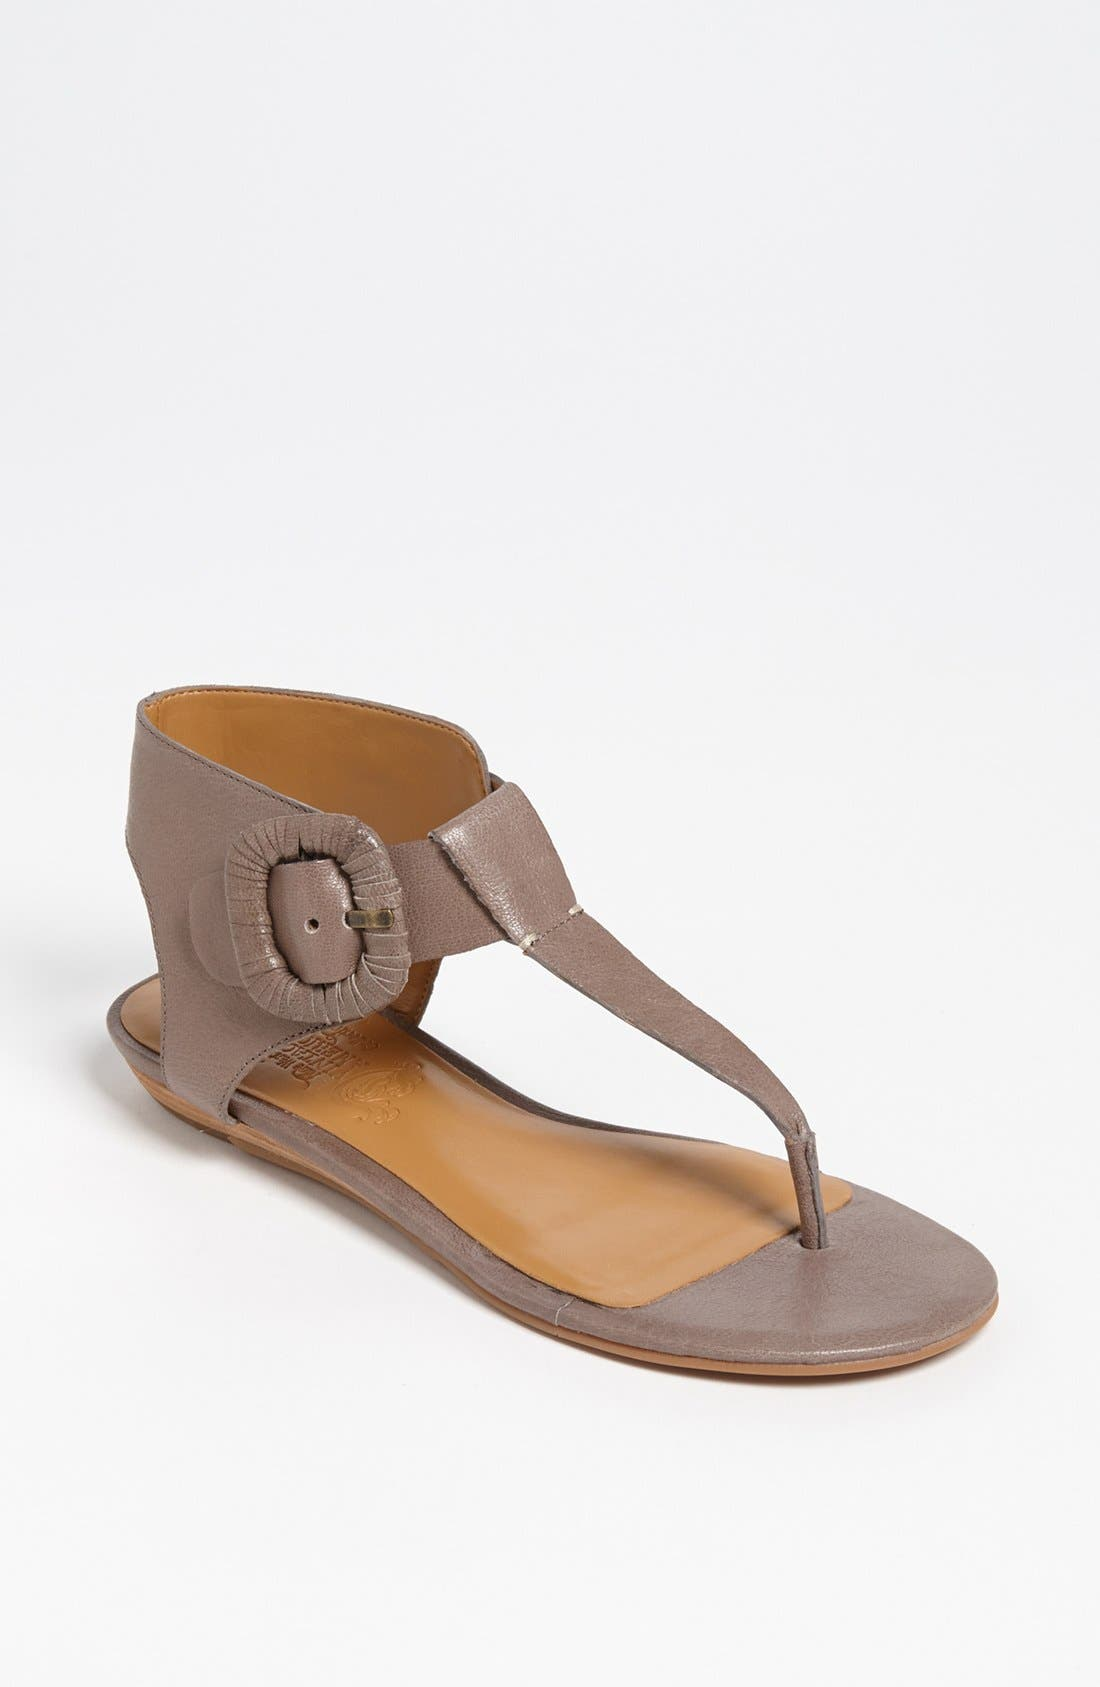 Main Image - Nine West 'Wiloh' Sandal